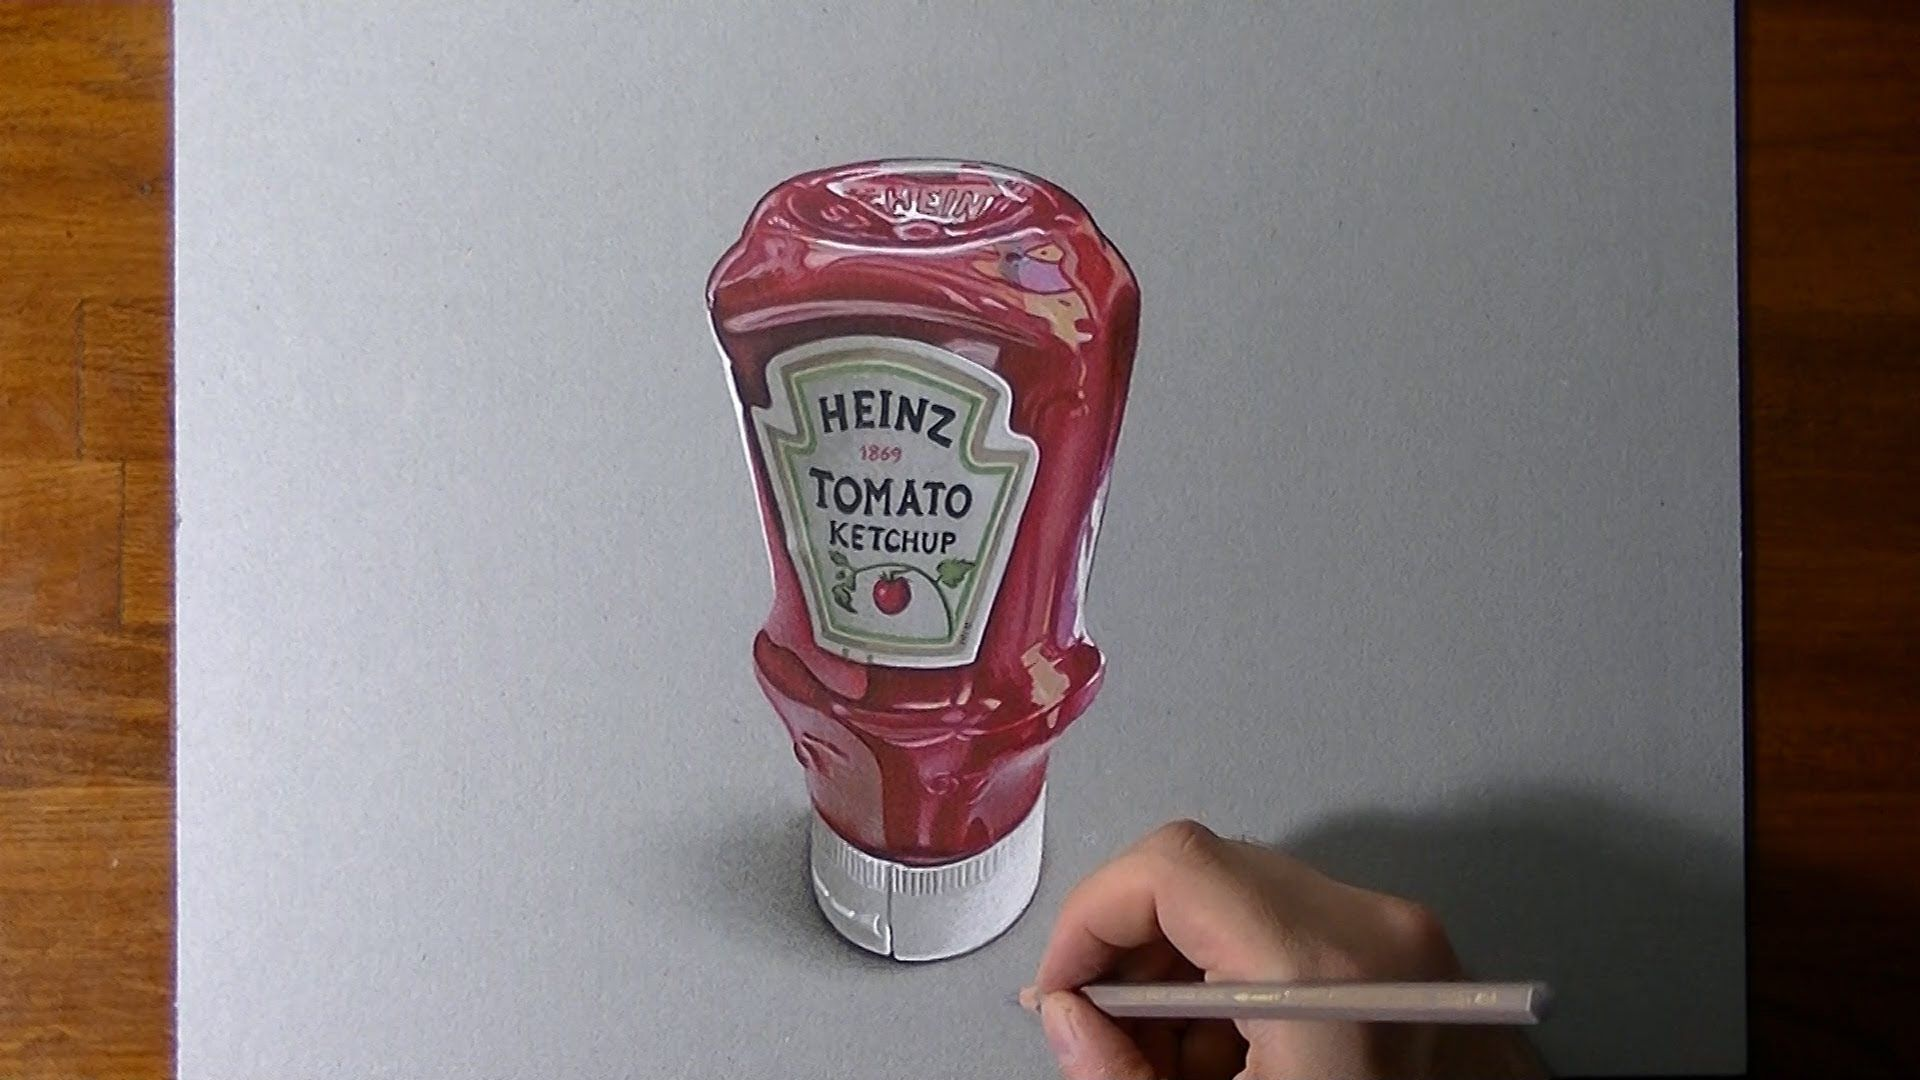 How I Draw A Heinz Tomato Ketchup Bottle Bottle Drawing Ketchup